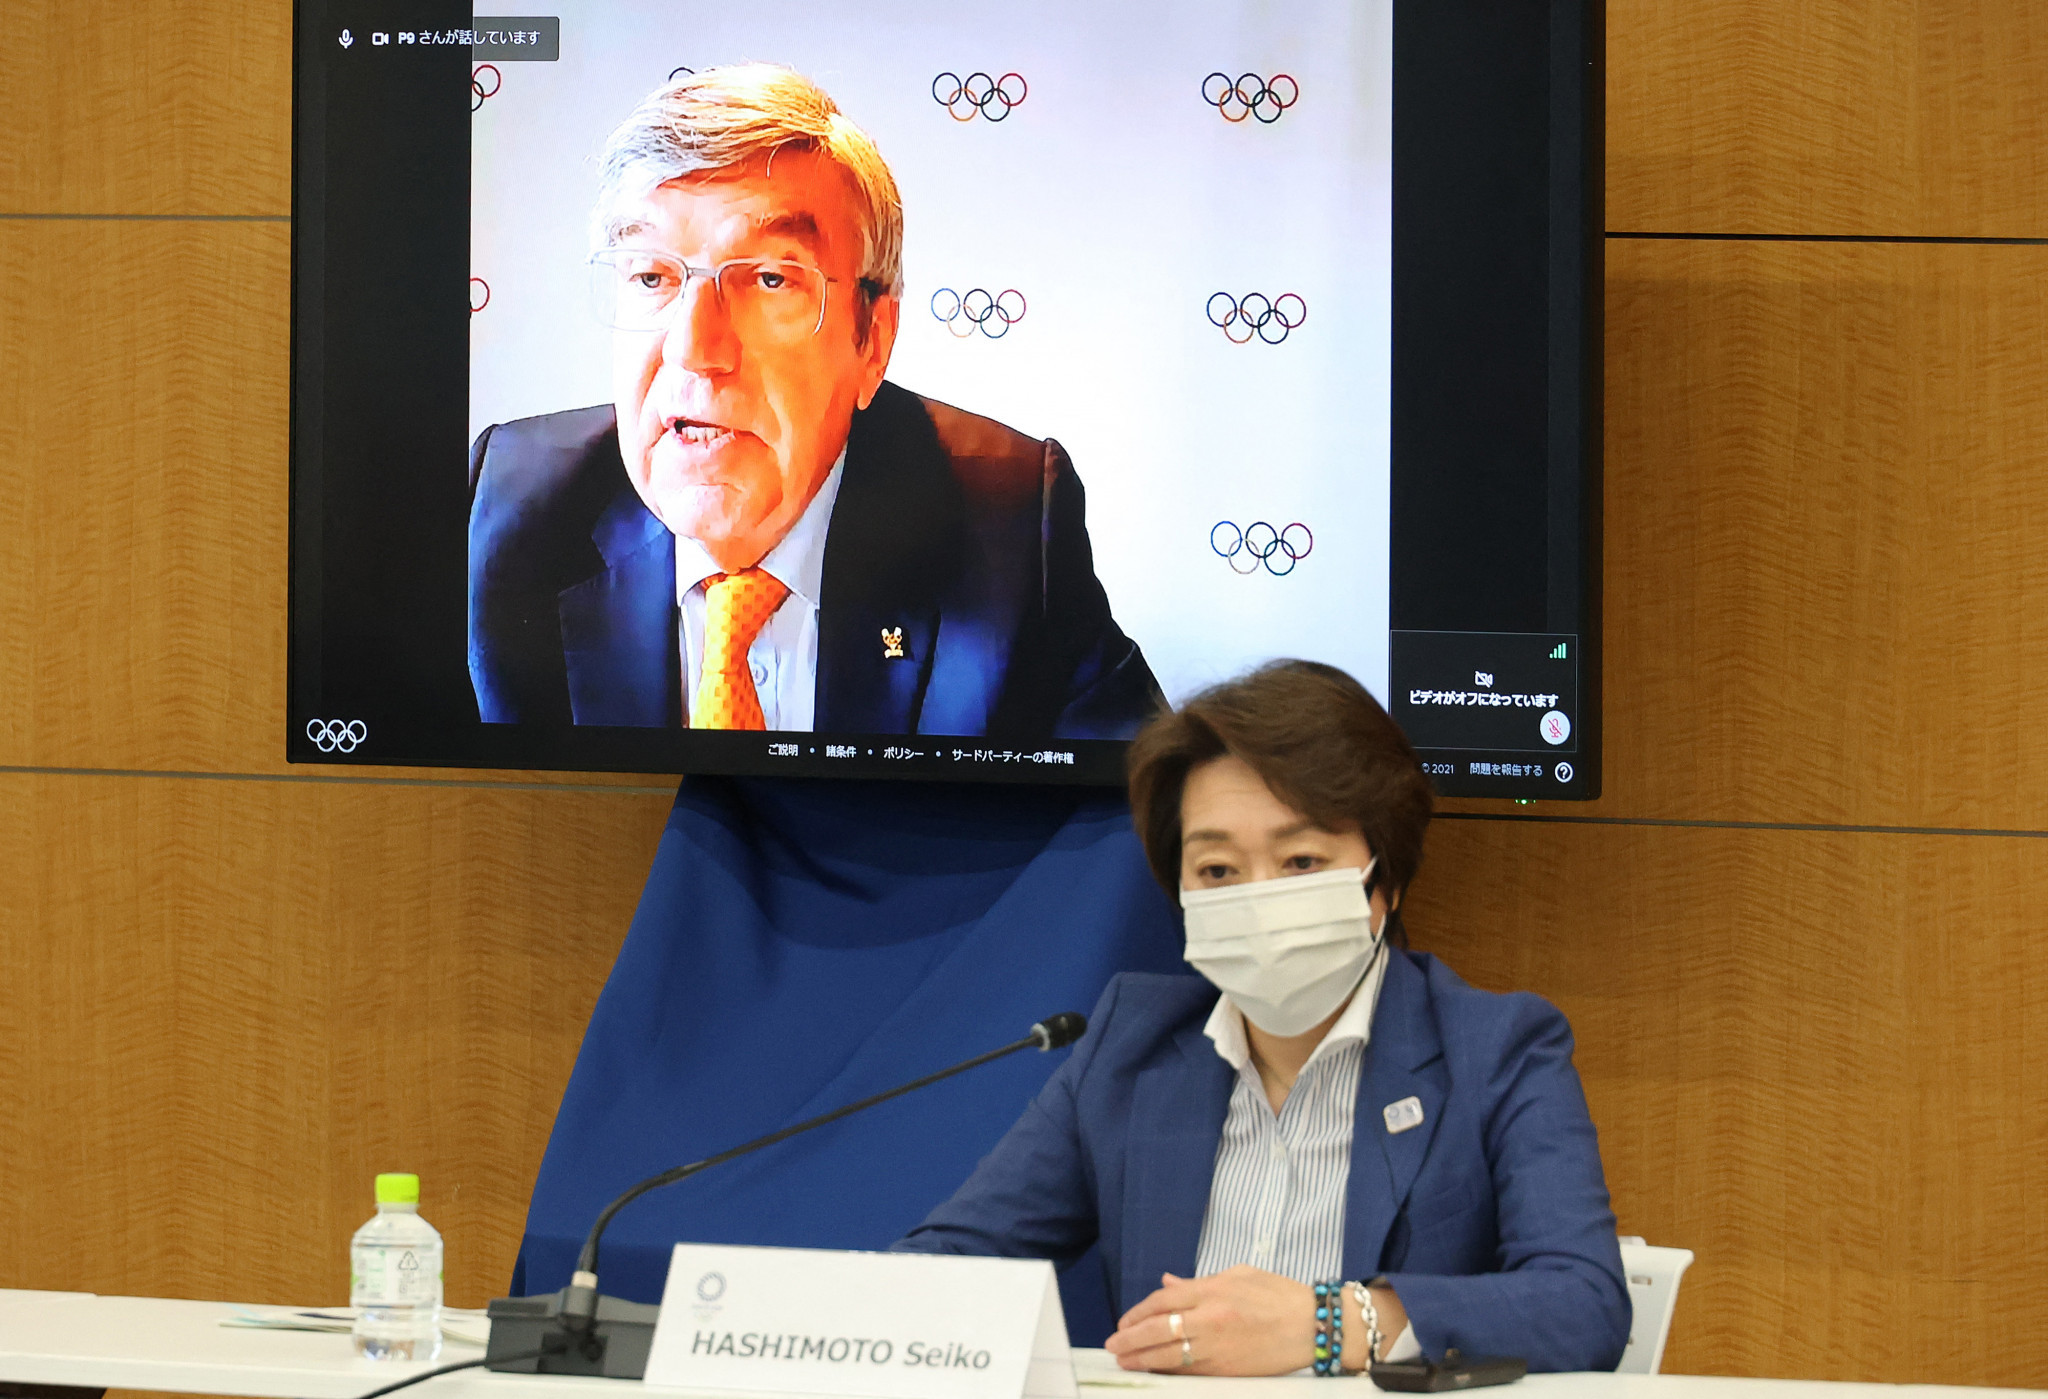 IOC President Thomas Bach has tried to appease the Japanese public as the Coordination Commission opened ©Getty Images